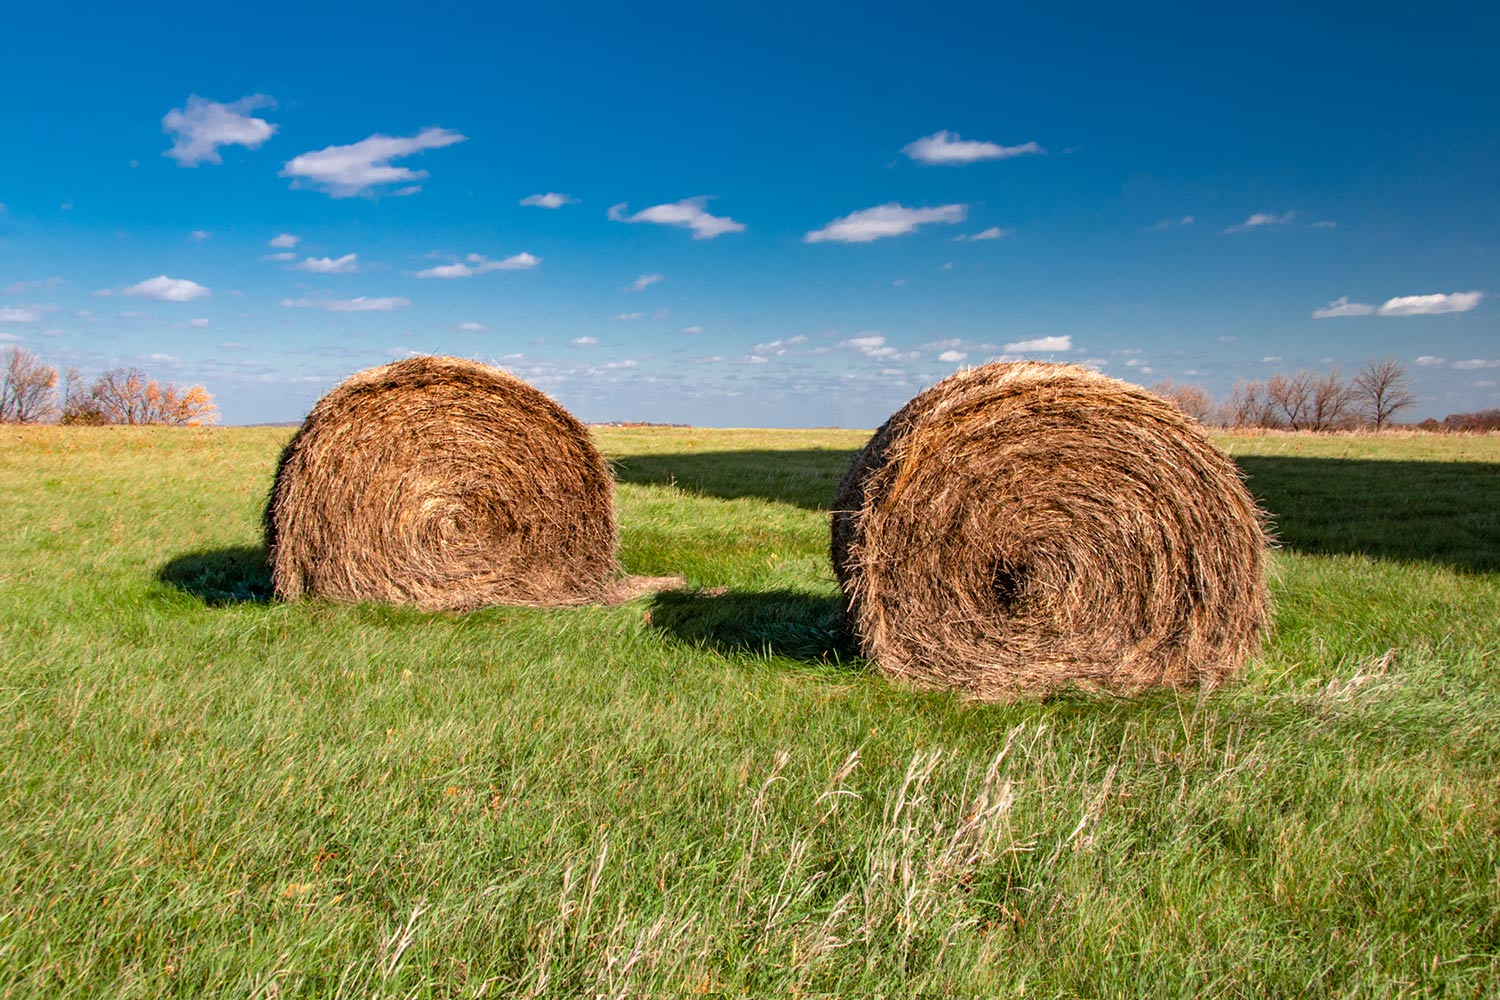 Two Bales